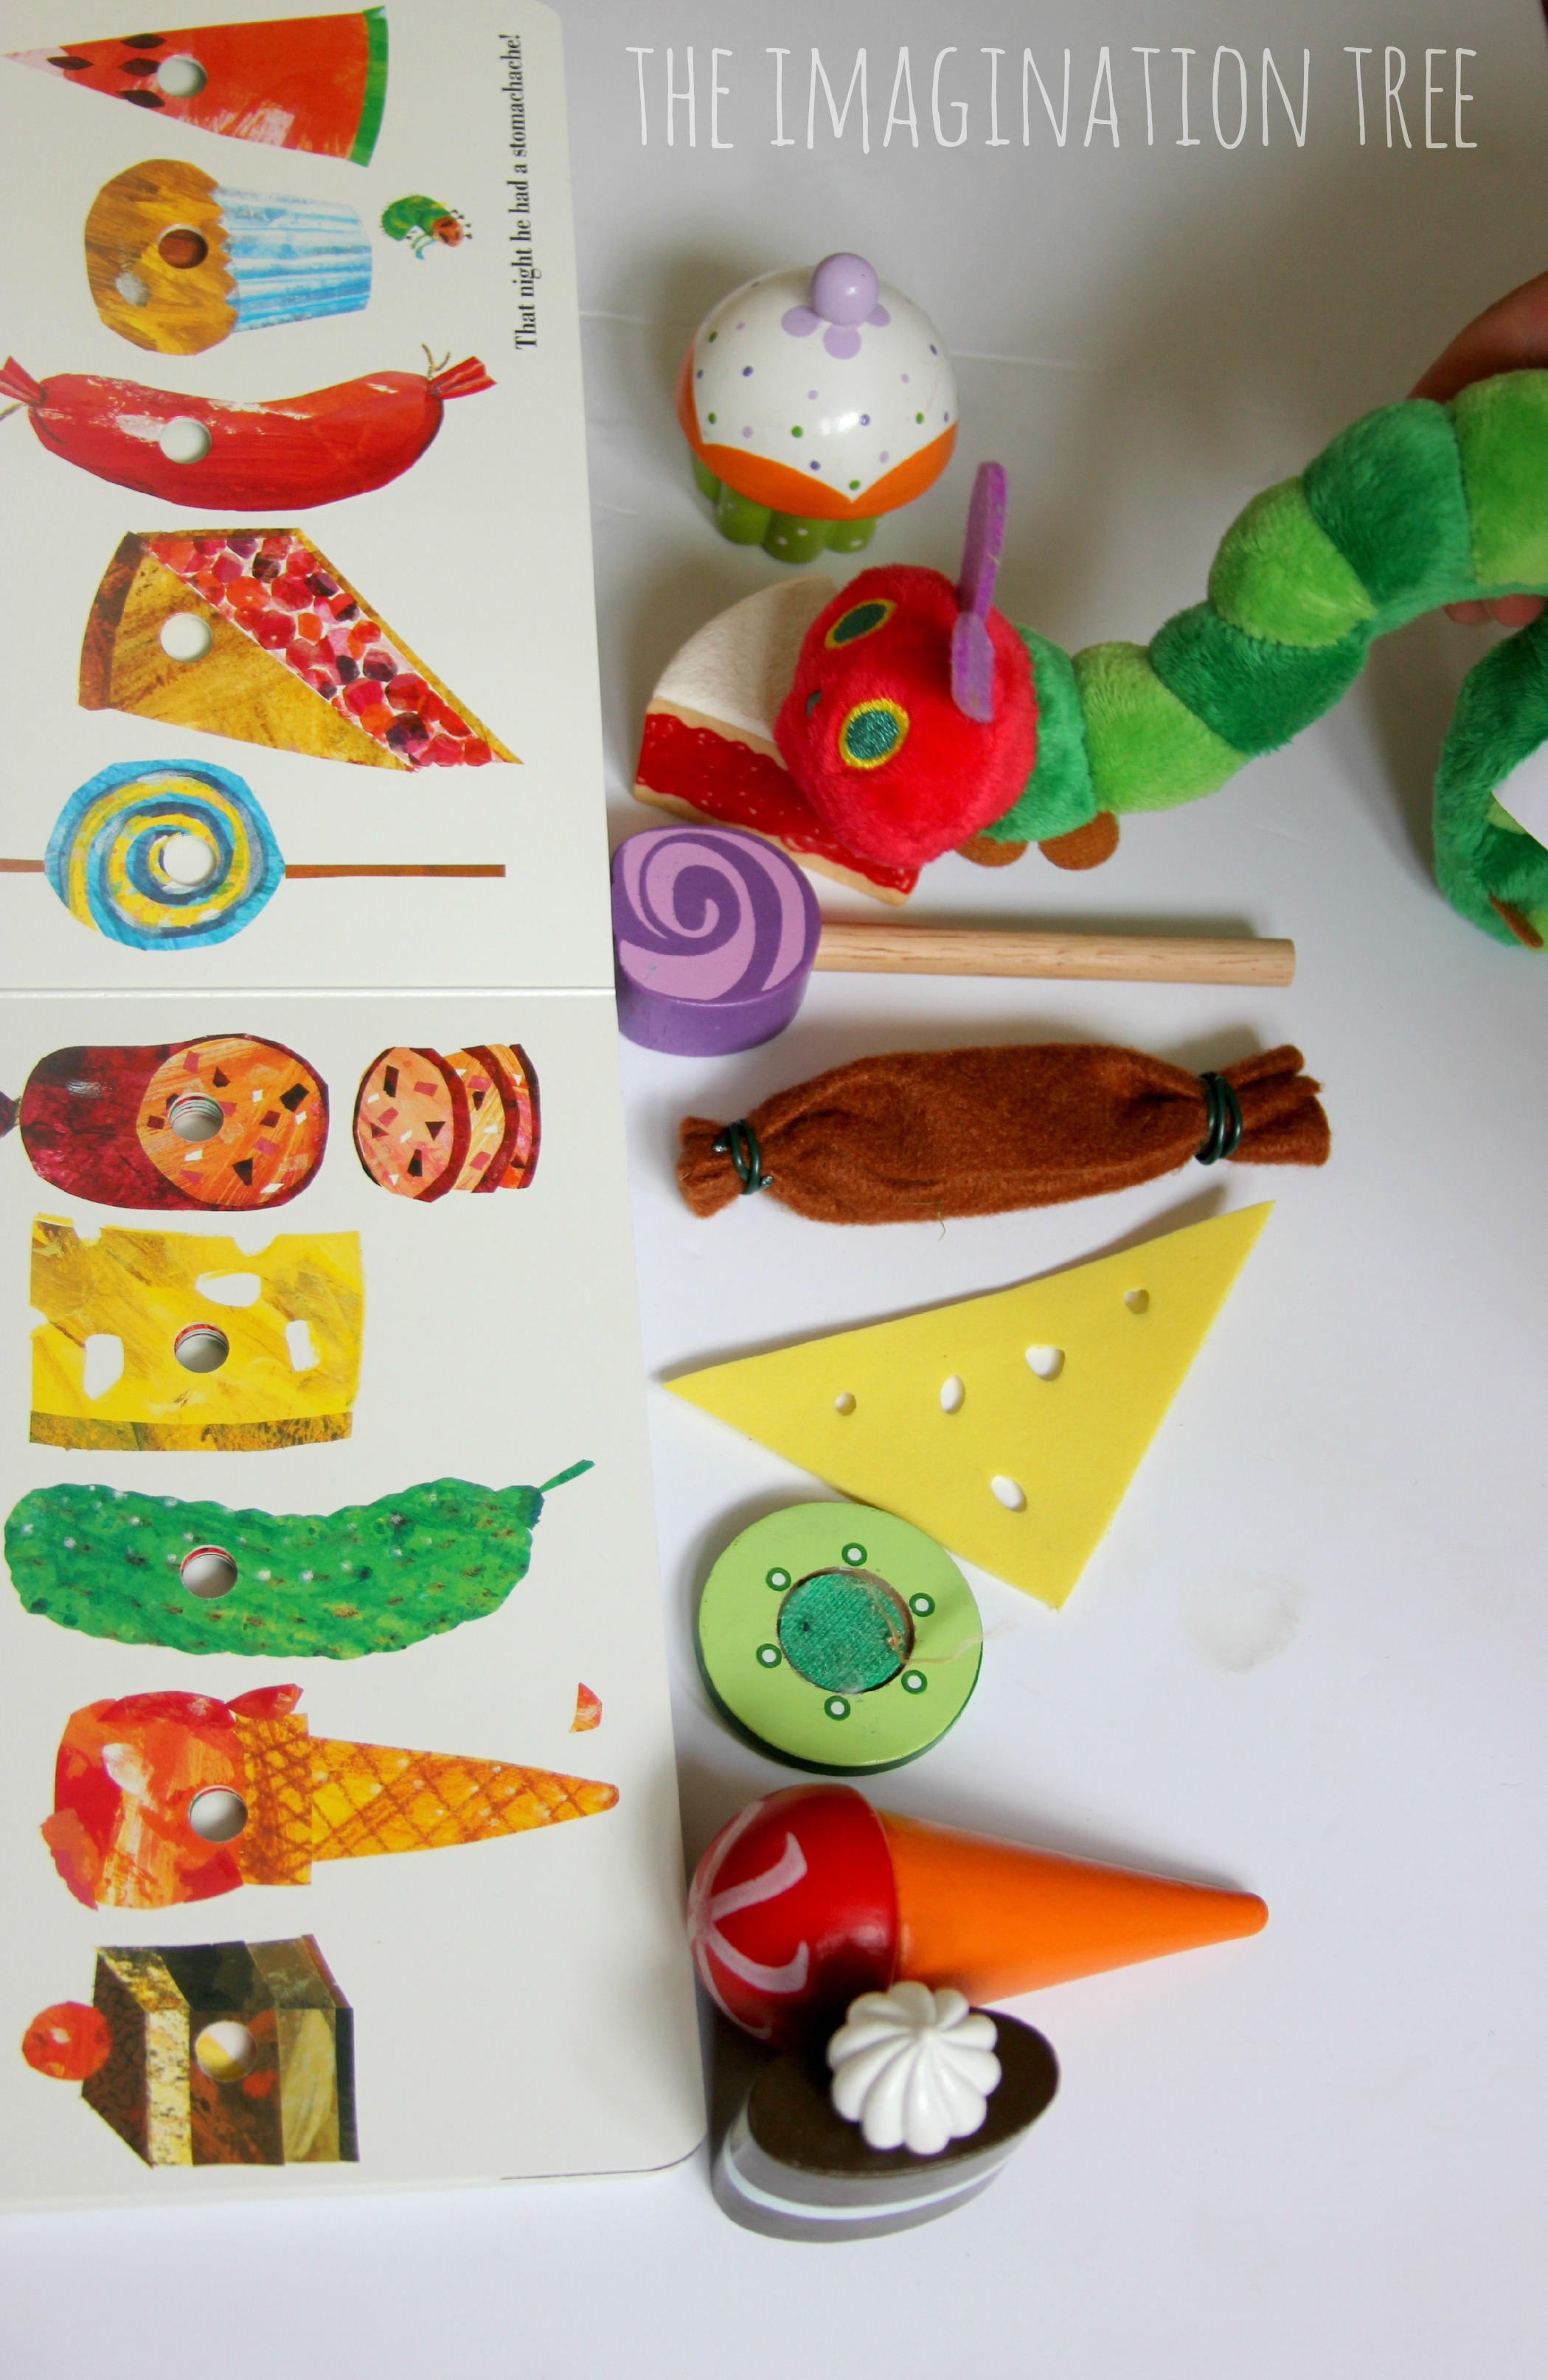 2017 05 the very hungry caterpillar lesson plans - Storytelling Basket For The Very Hungry Caterpillar